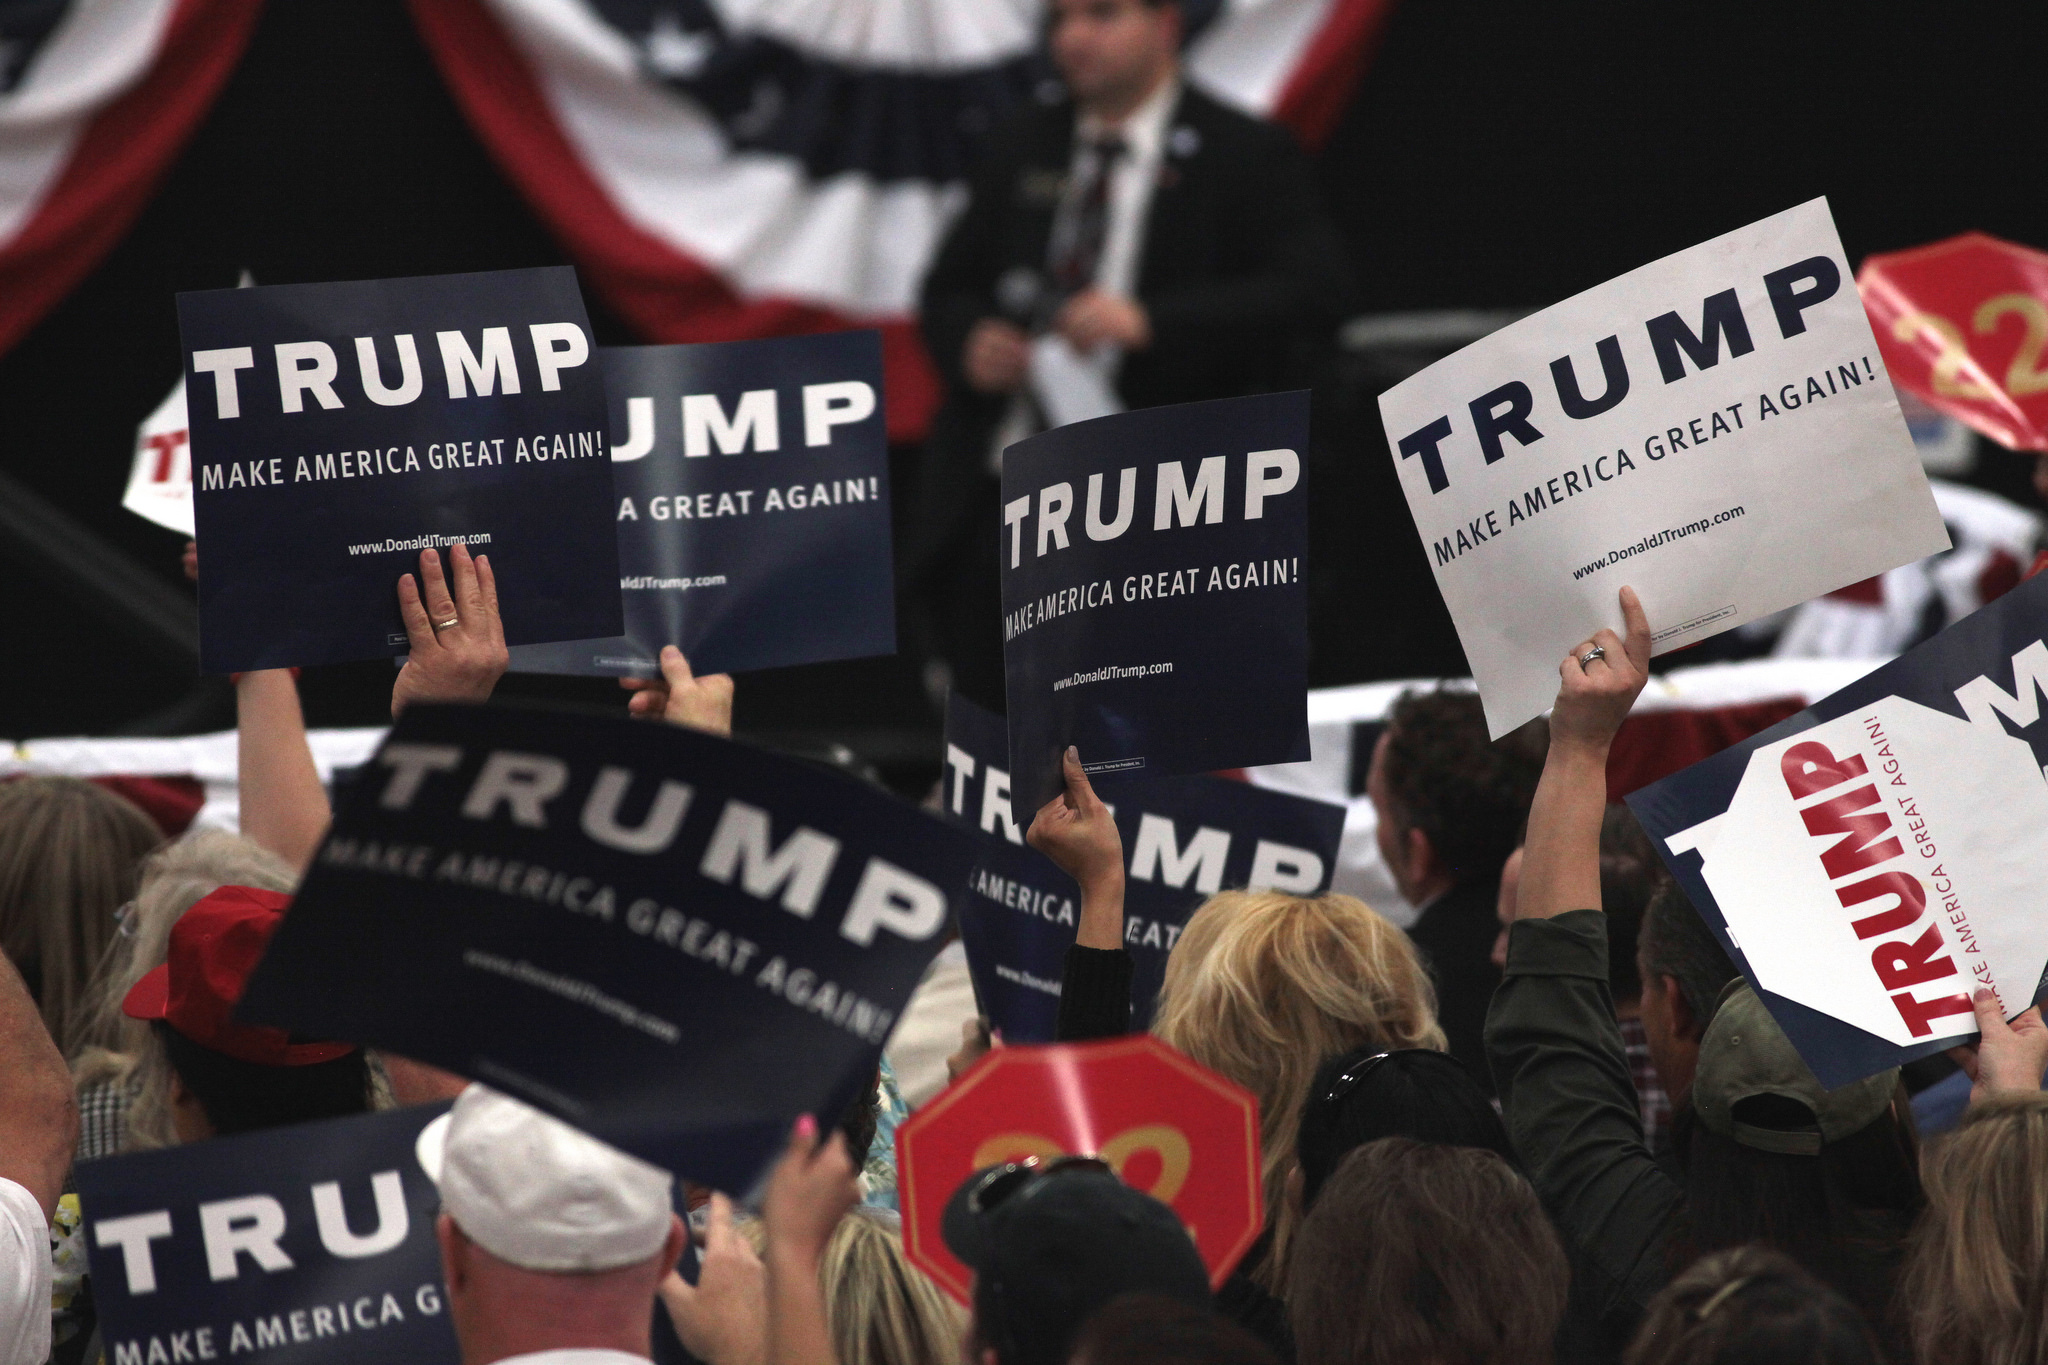 A Trump rally in Las Vegas. Photo credit: flickr user Gage Skidmore https://www.flickr.com/photos/gageskidmore/25218962886/ Creative Commons license: https://creativecommons.org/licenses/by-sa/2.0/